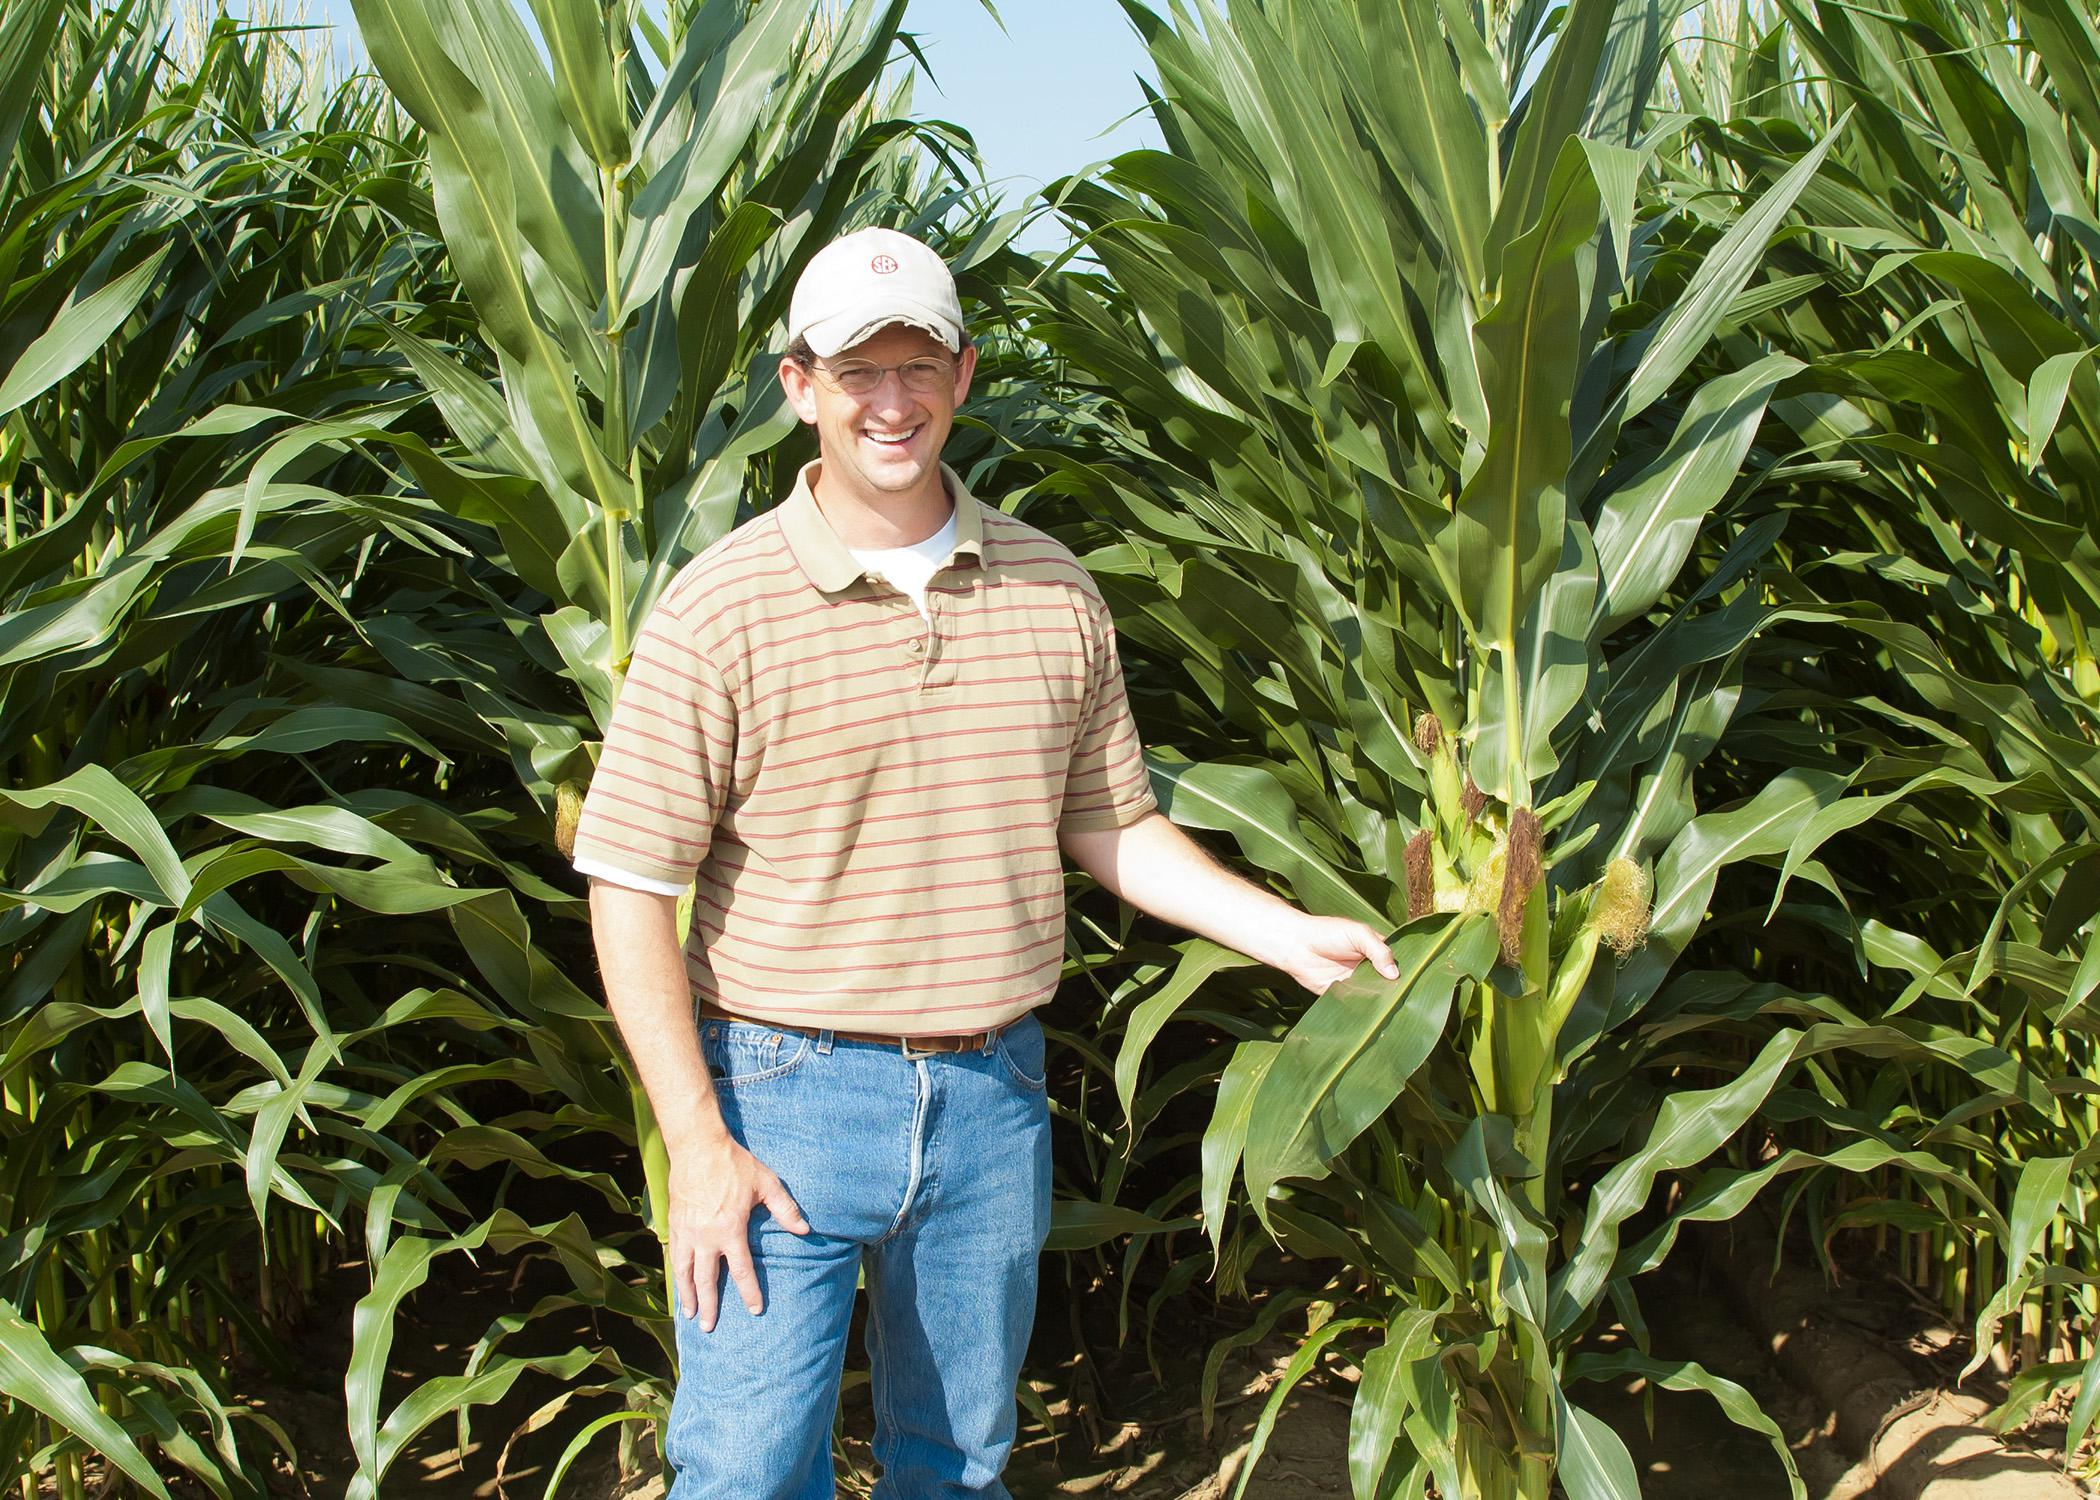 Brien Henry, an associate professor in the Mississippi State University Department of Plant and Soil Sciences, is visiting a research plot on June 19, 2014, at the R.R. Foil Plant Science Research Center, commonly known as North Farm. He is researching the effects of planting date, plant population and hybrid selection on field corn. (Photo by Mississippi Agricultural and Forestry Experiment Station/David Ammon)